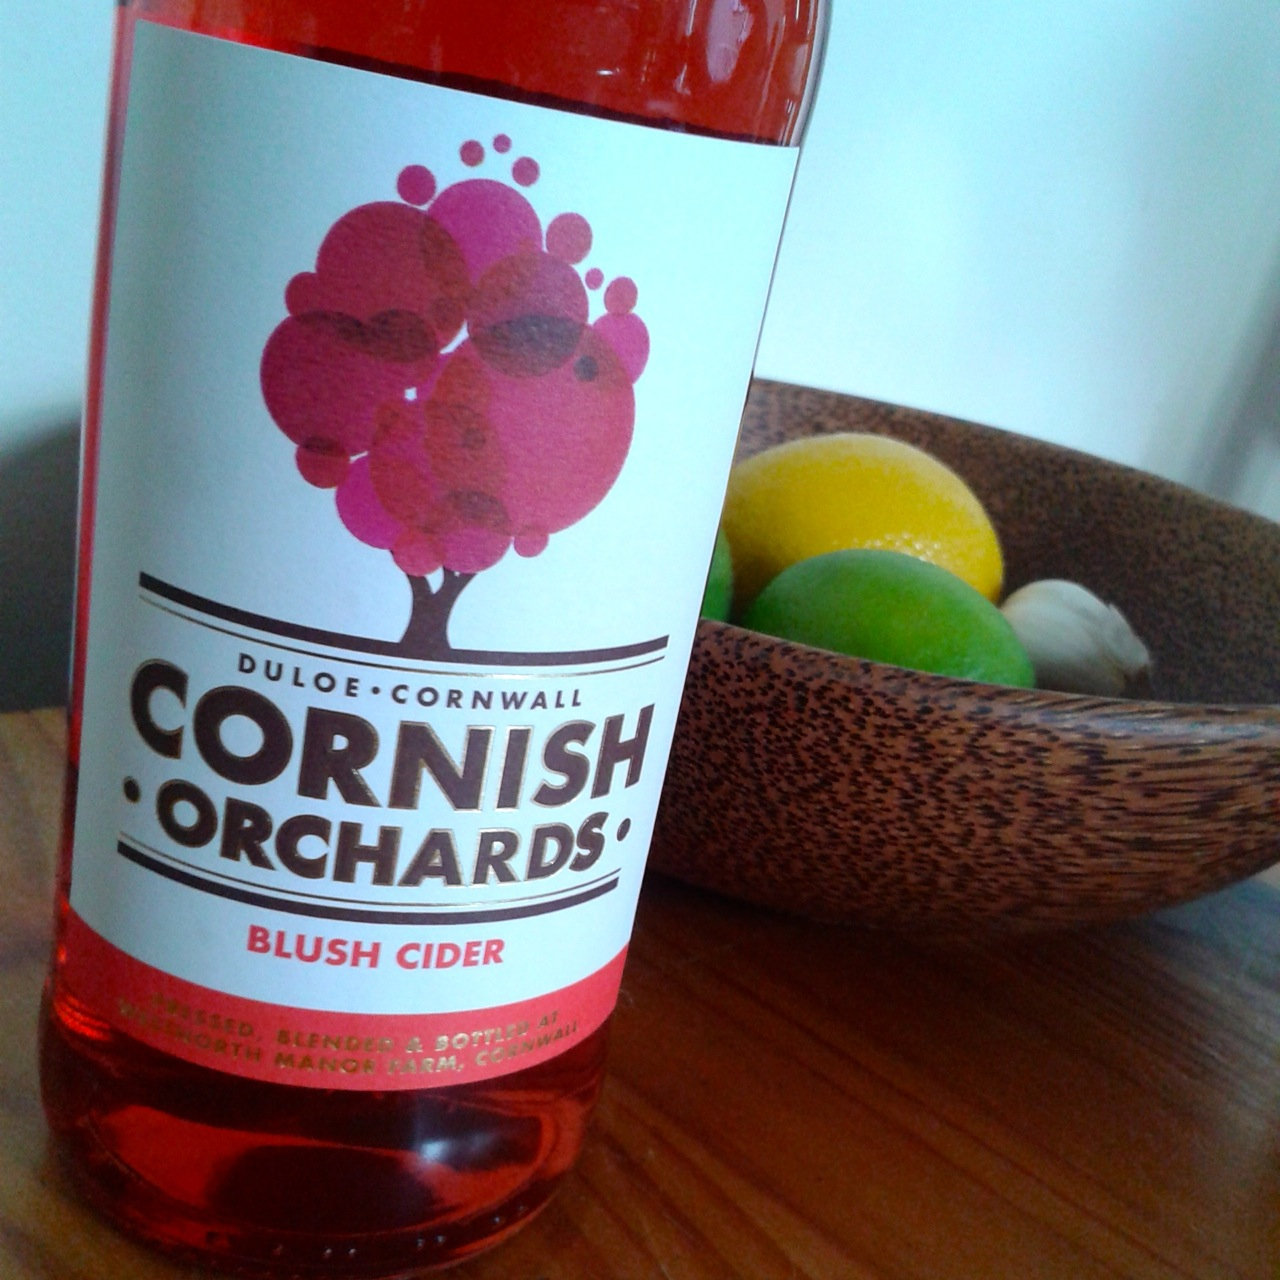 https://i1.wp.com/fatgayvegan.com/wp-content/uploads/2014/08/cornish-cider.jpg?fit=1280%2C1280